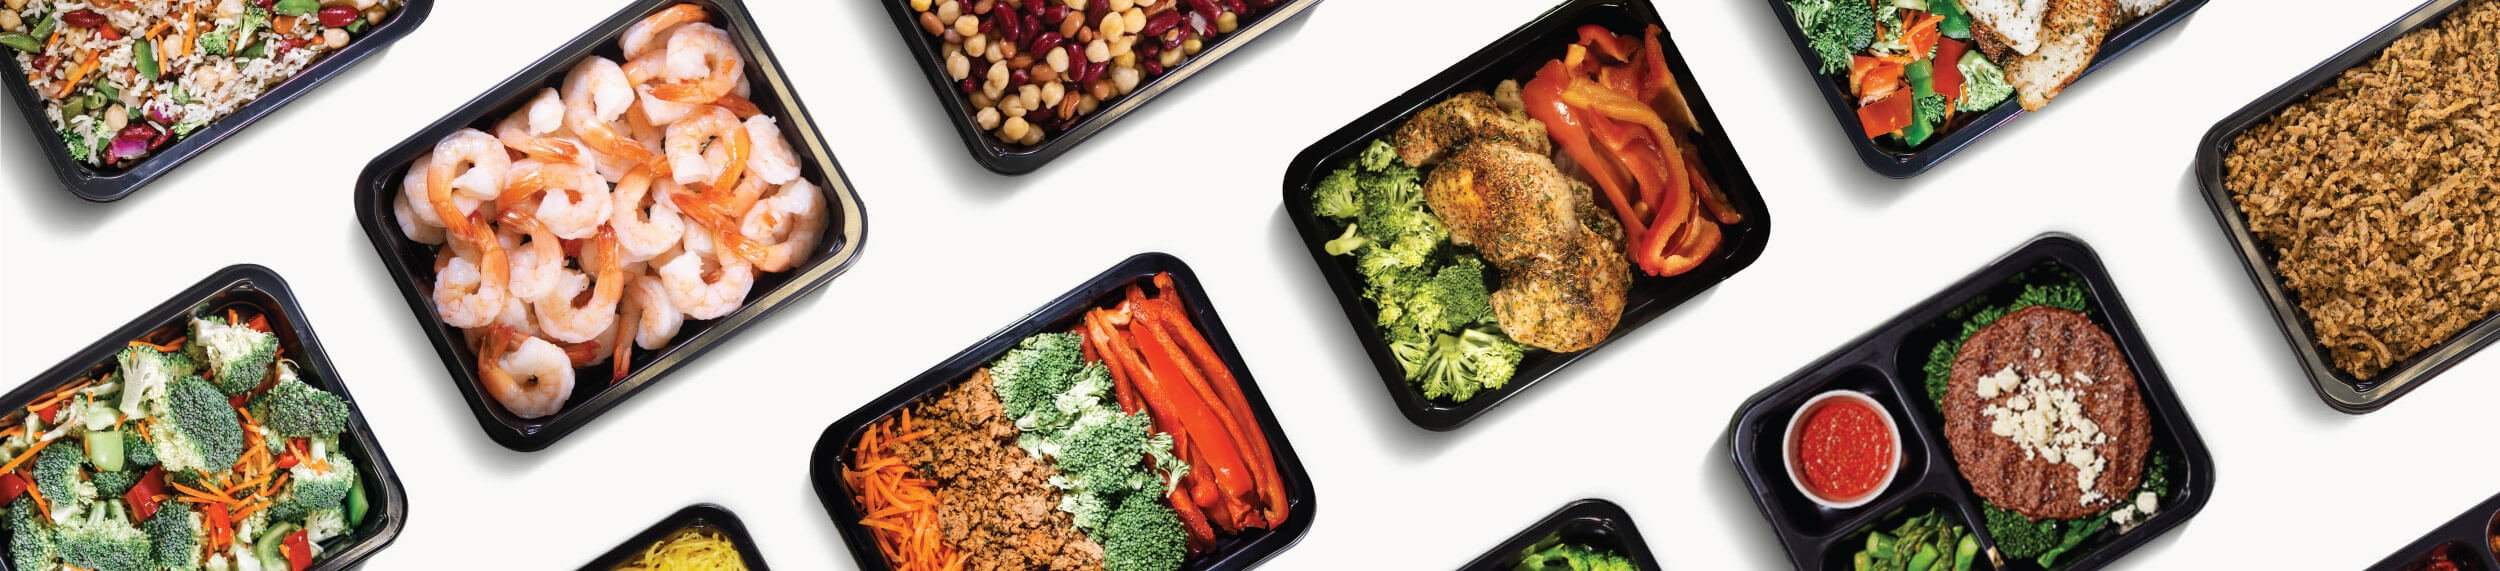 Healthy Louisville weight loss meals served in a microwave safe weight loss meal prep containers